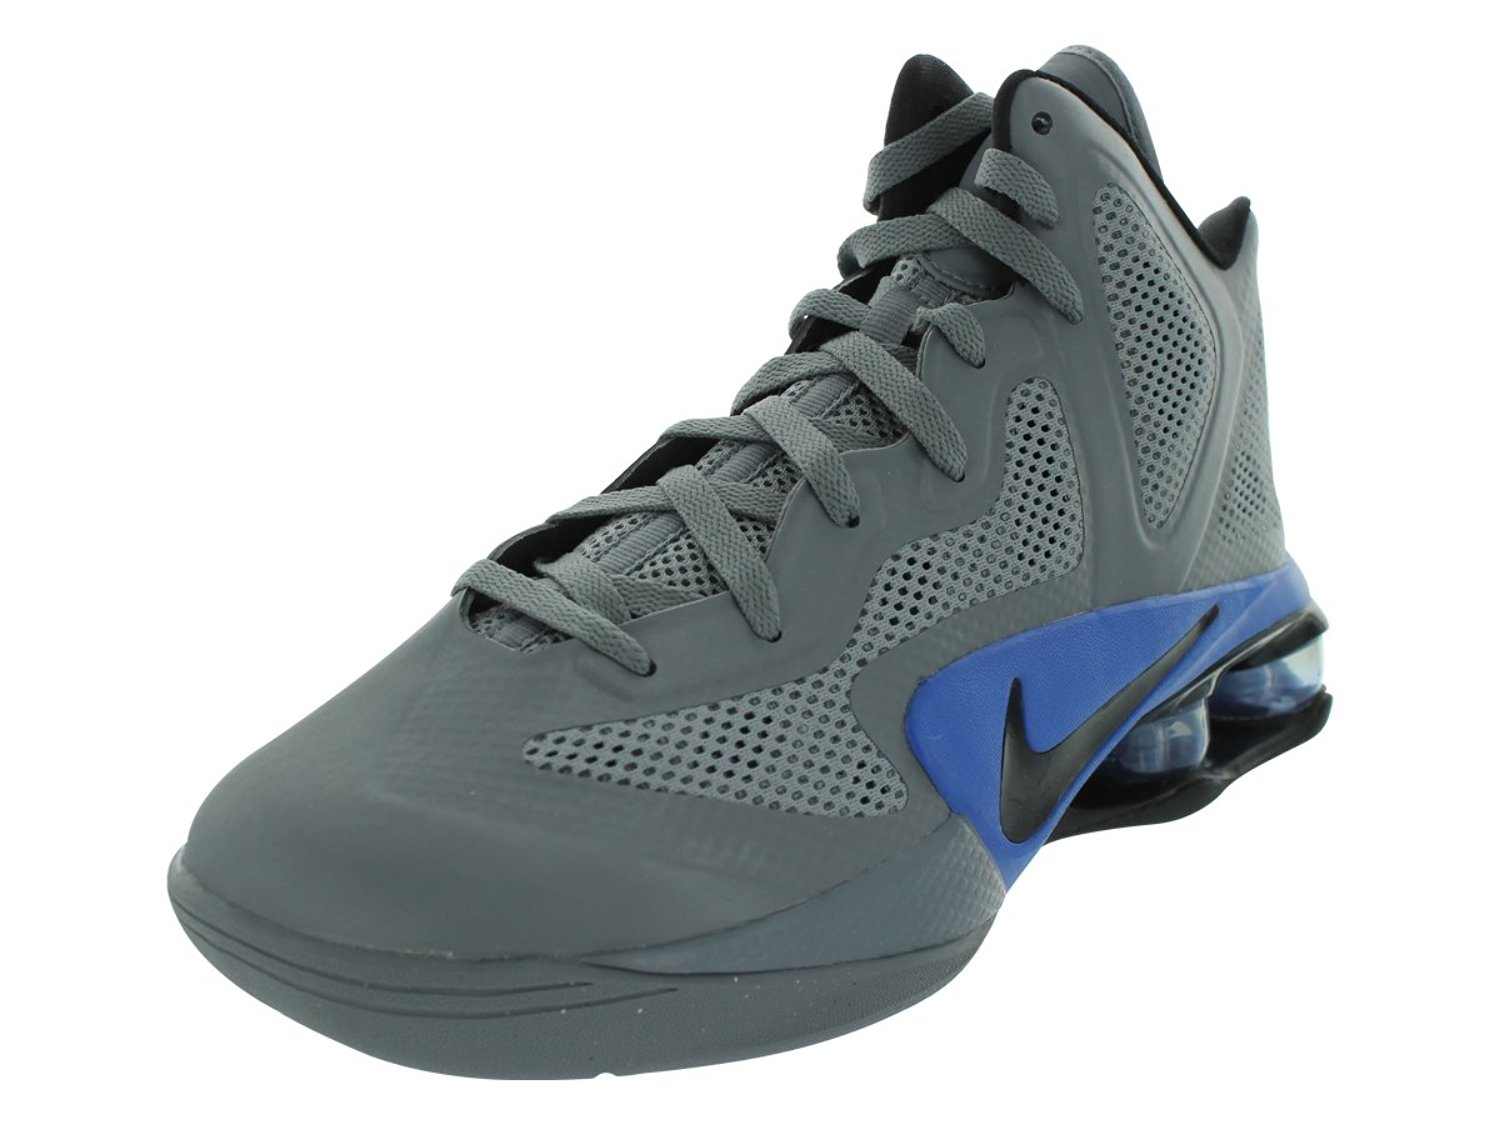 be2b1e08bfce4e Get Quotations · NIKE SHOX AIR HYPERBALLER BASKETBALL SHOES